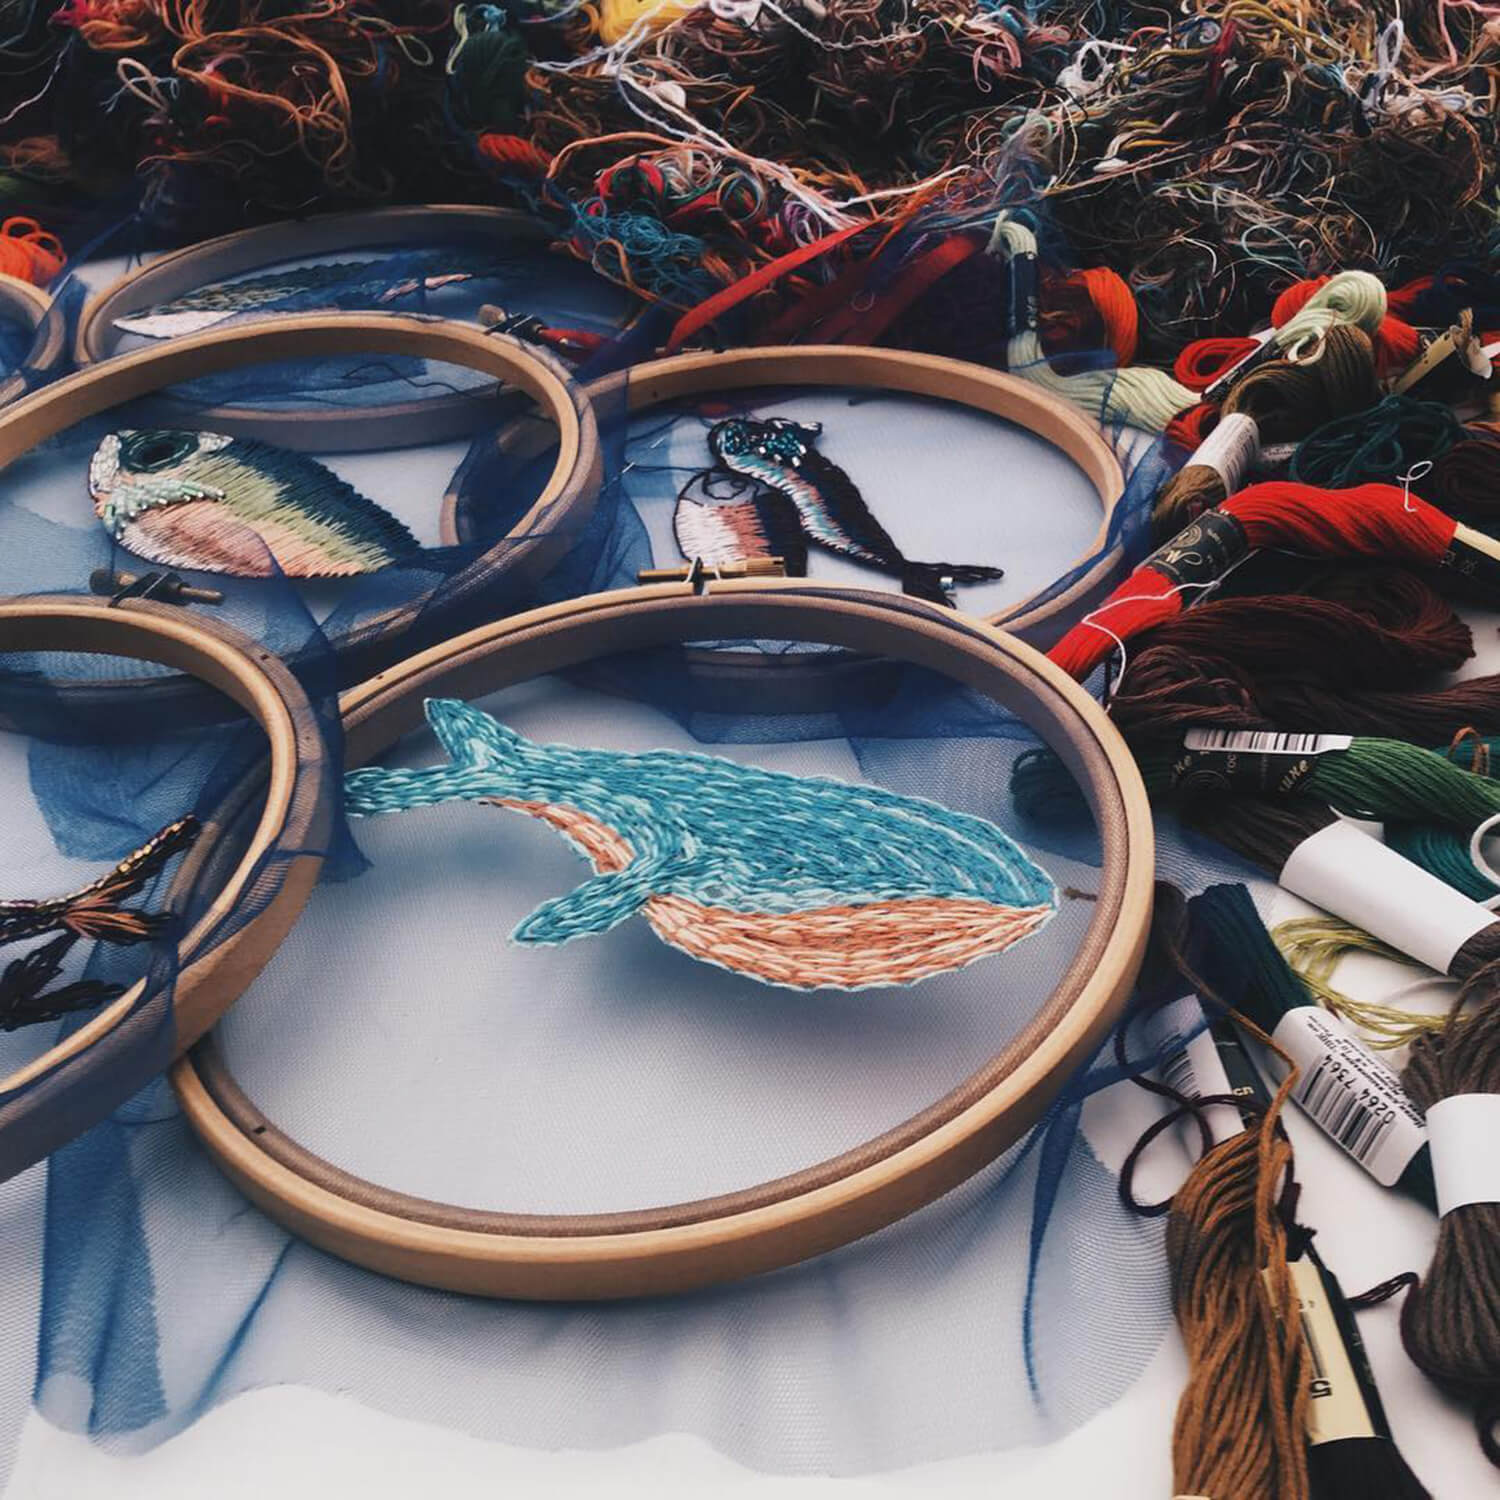 Embroidery of a whale in an embroidery hoop